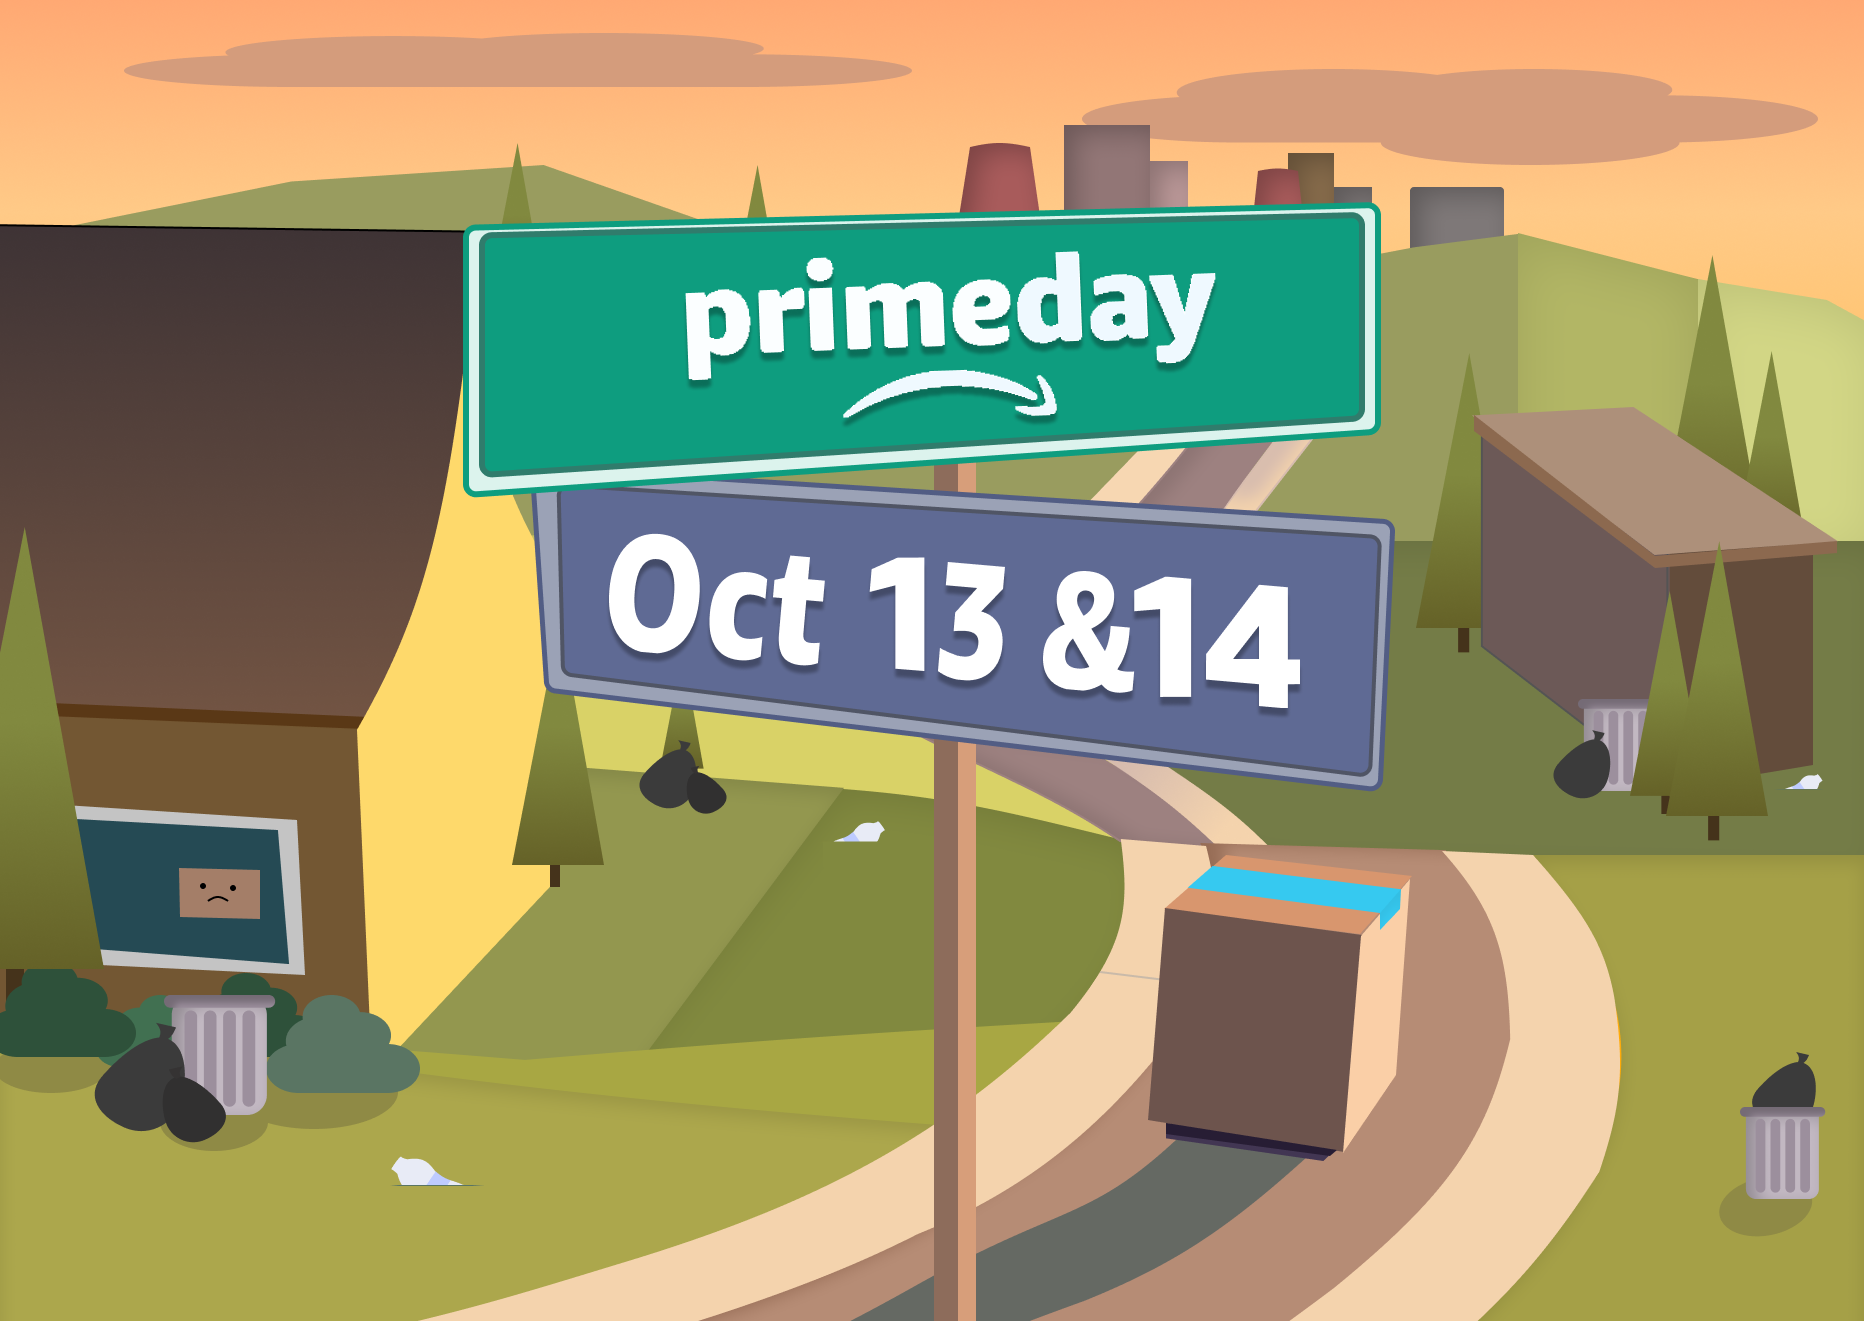 /how-the-environment-is-paying-for-our-prime-day-discounts-3sn3tp1 feature image